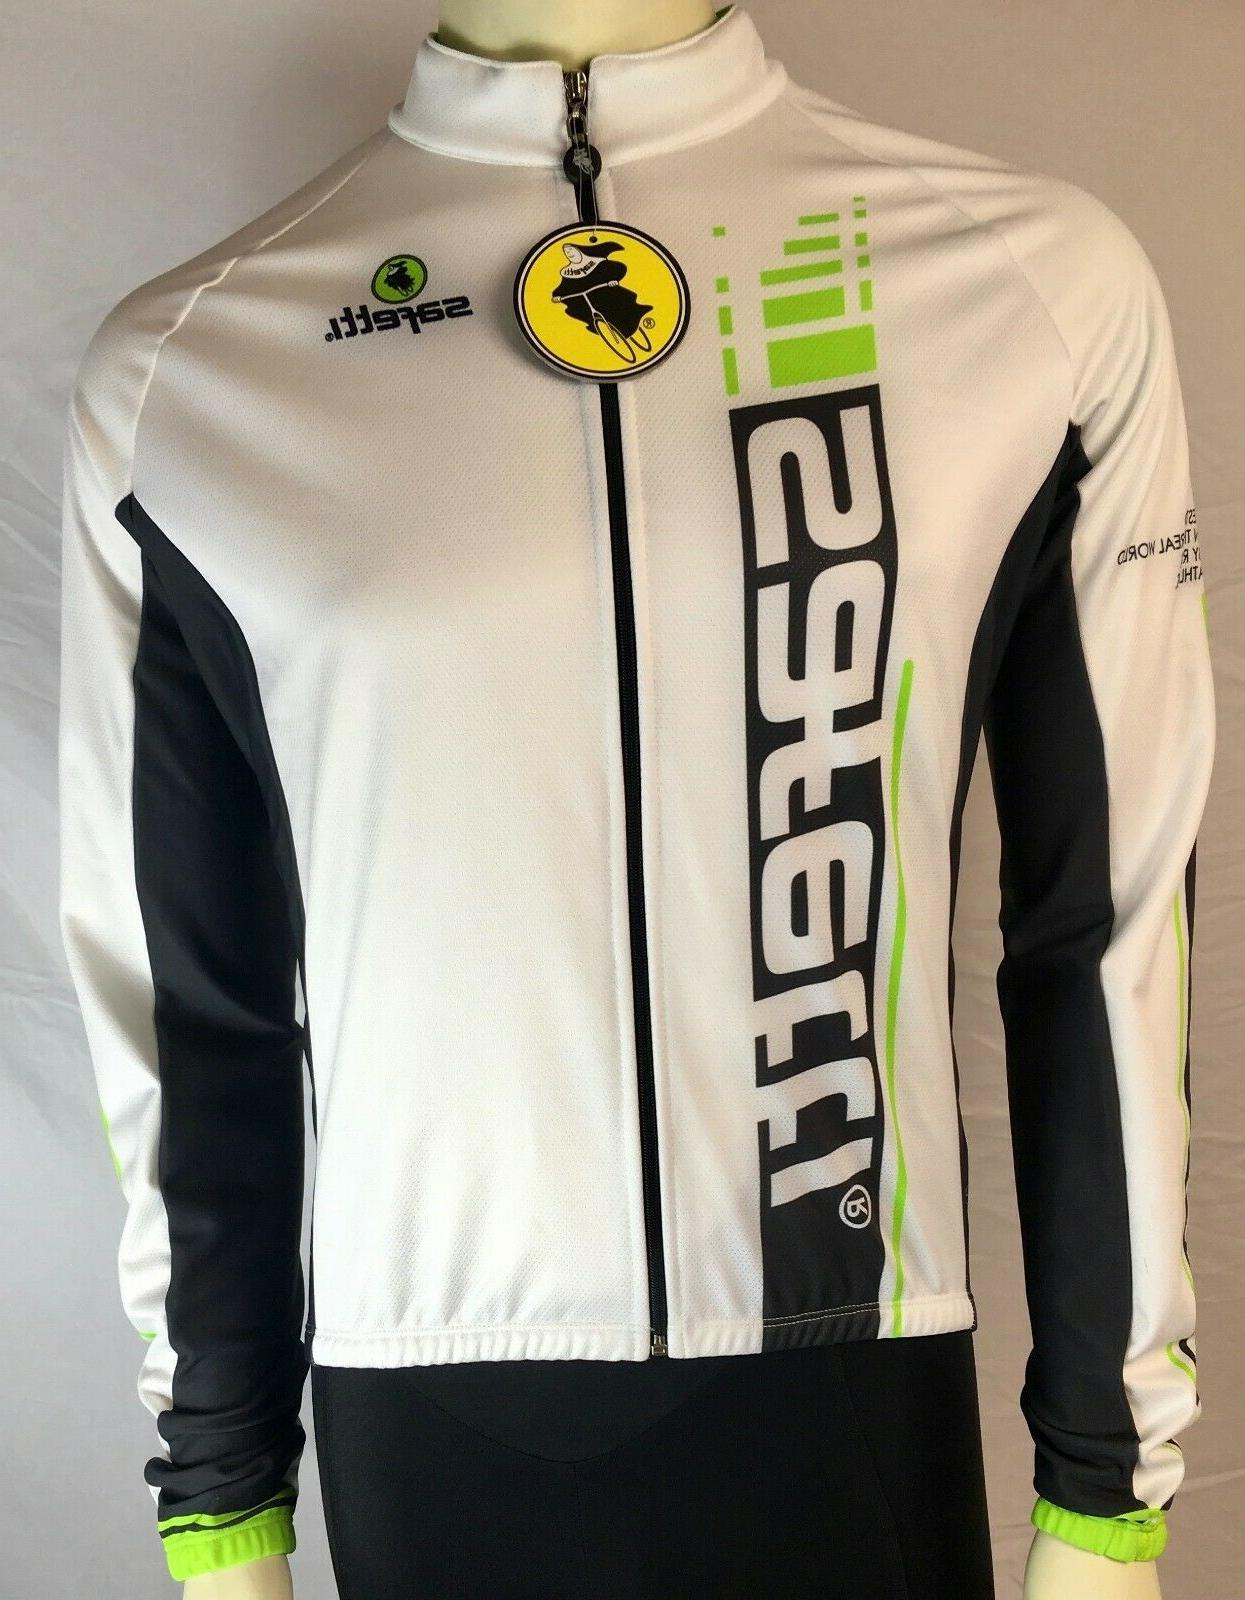 Safetti Men's Cycling LS Jersey Size Medium White